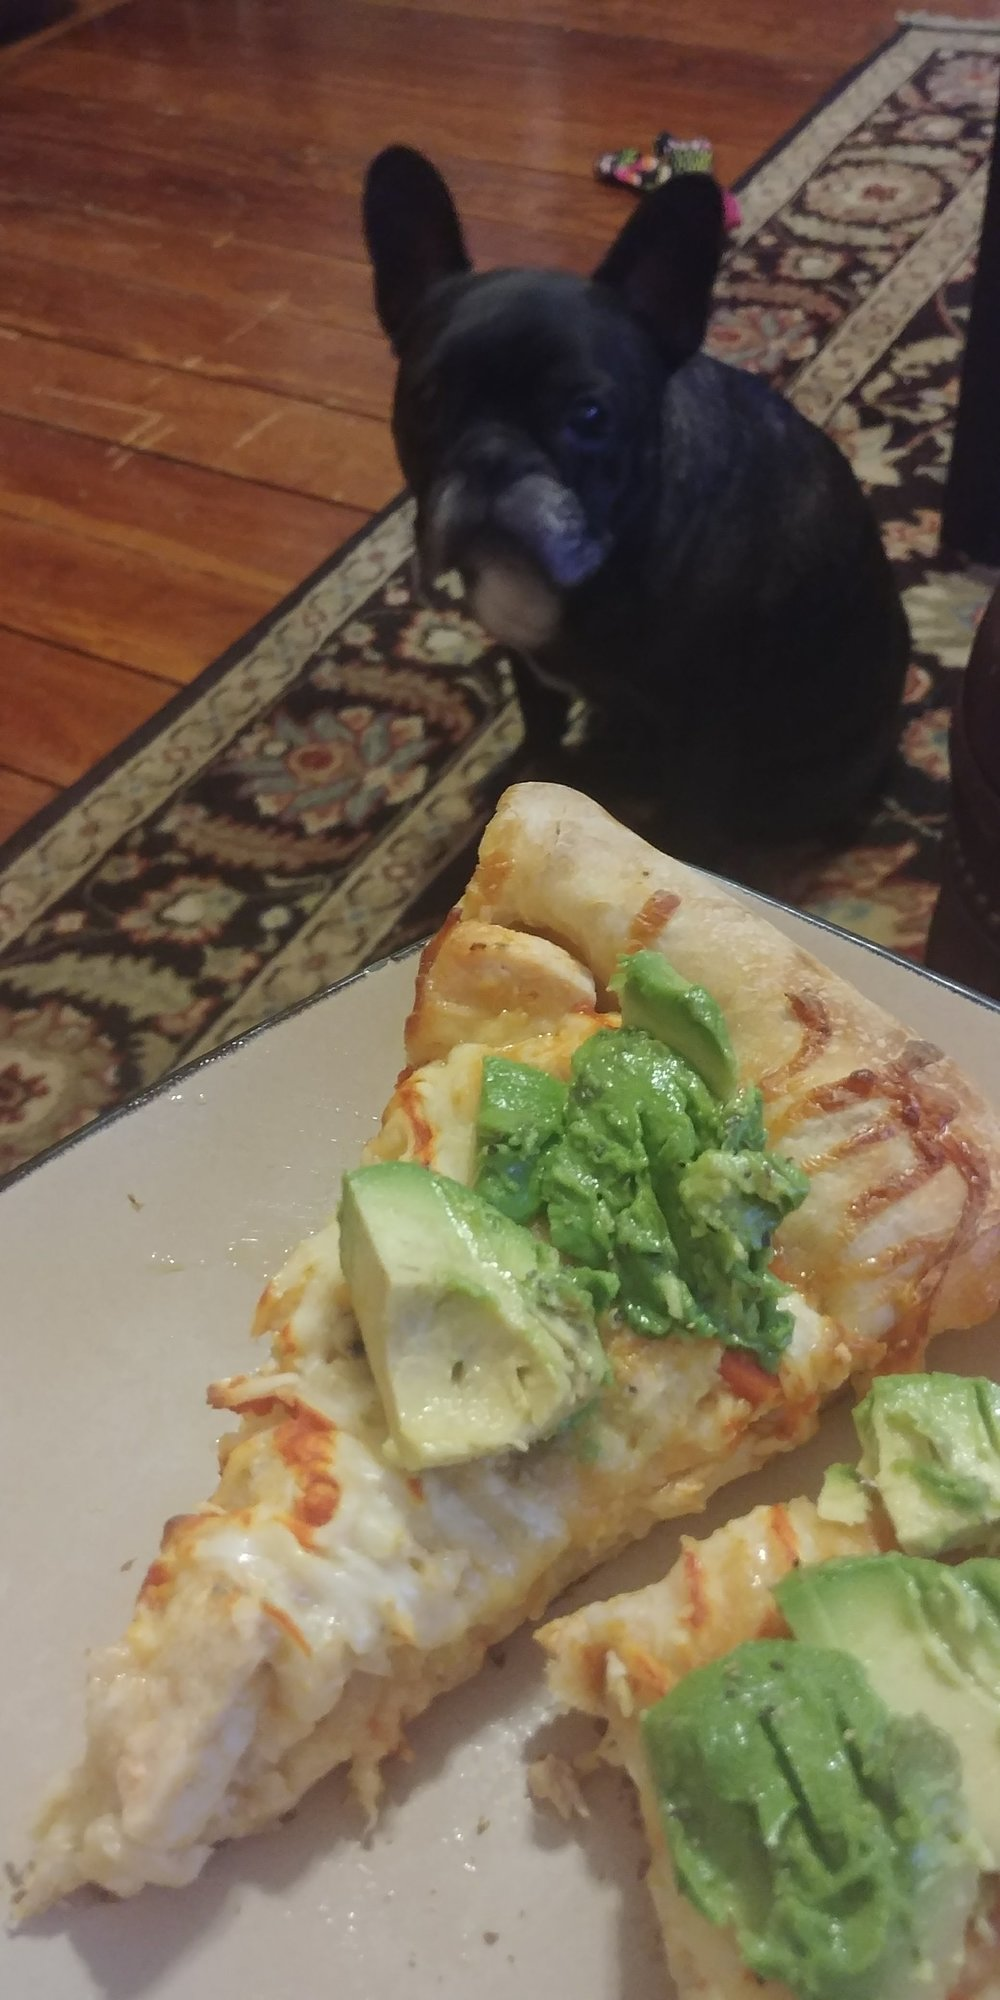 We had an avocado that was about to go back so we threw it on top, because why not?!  Our doggie visiter tried really hard to get some of this pizza so be guard it with your life!